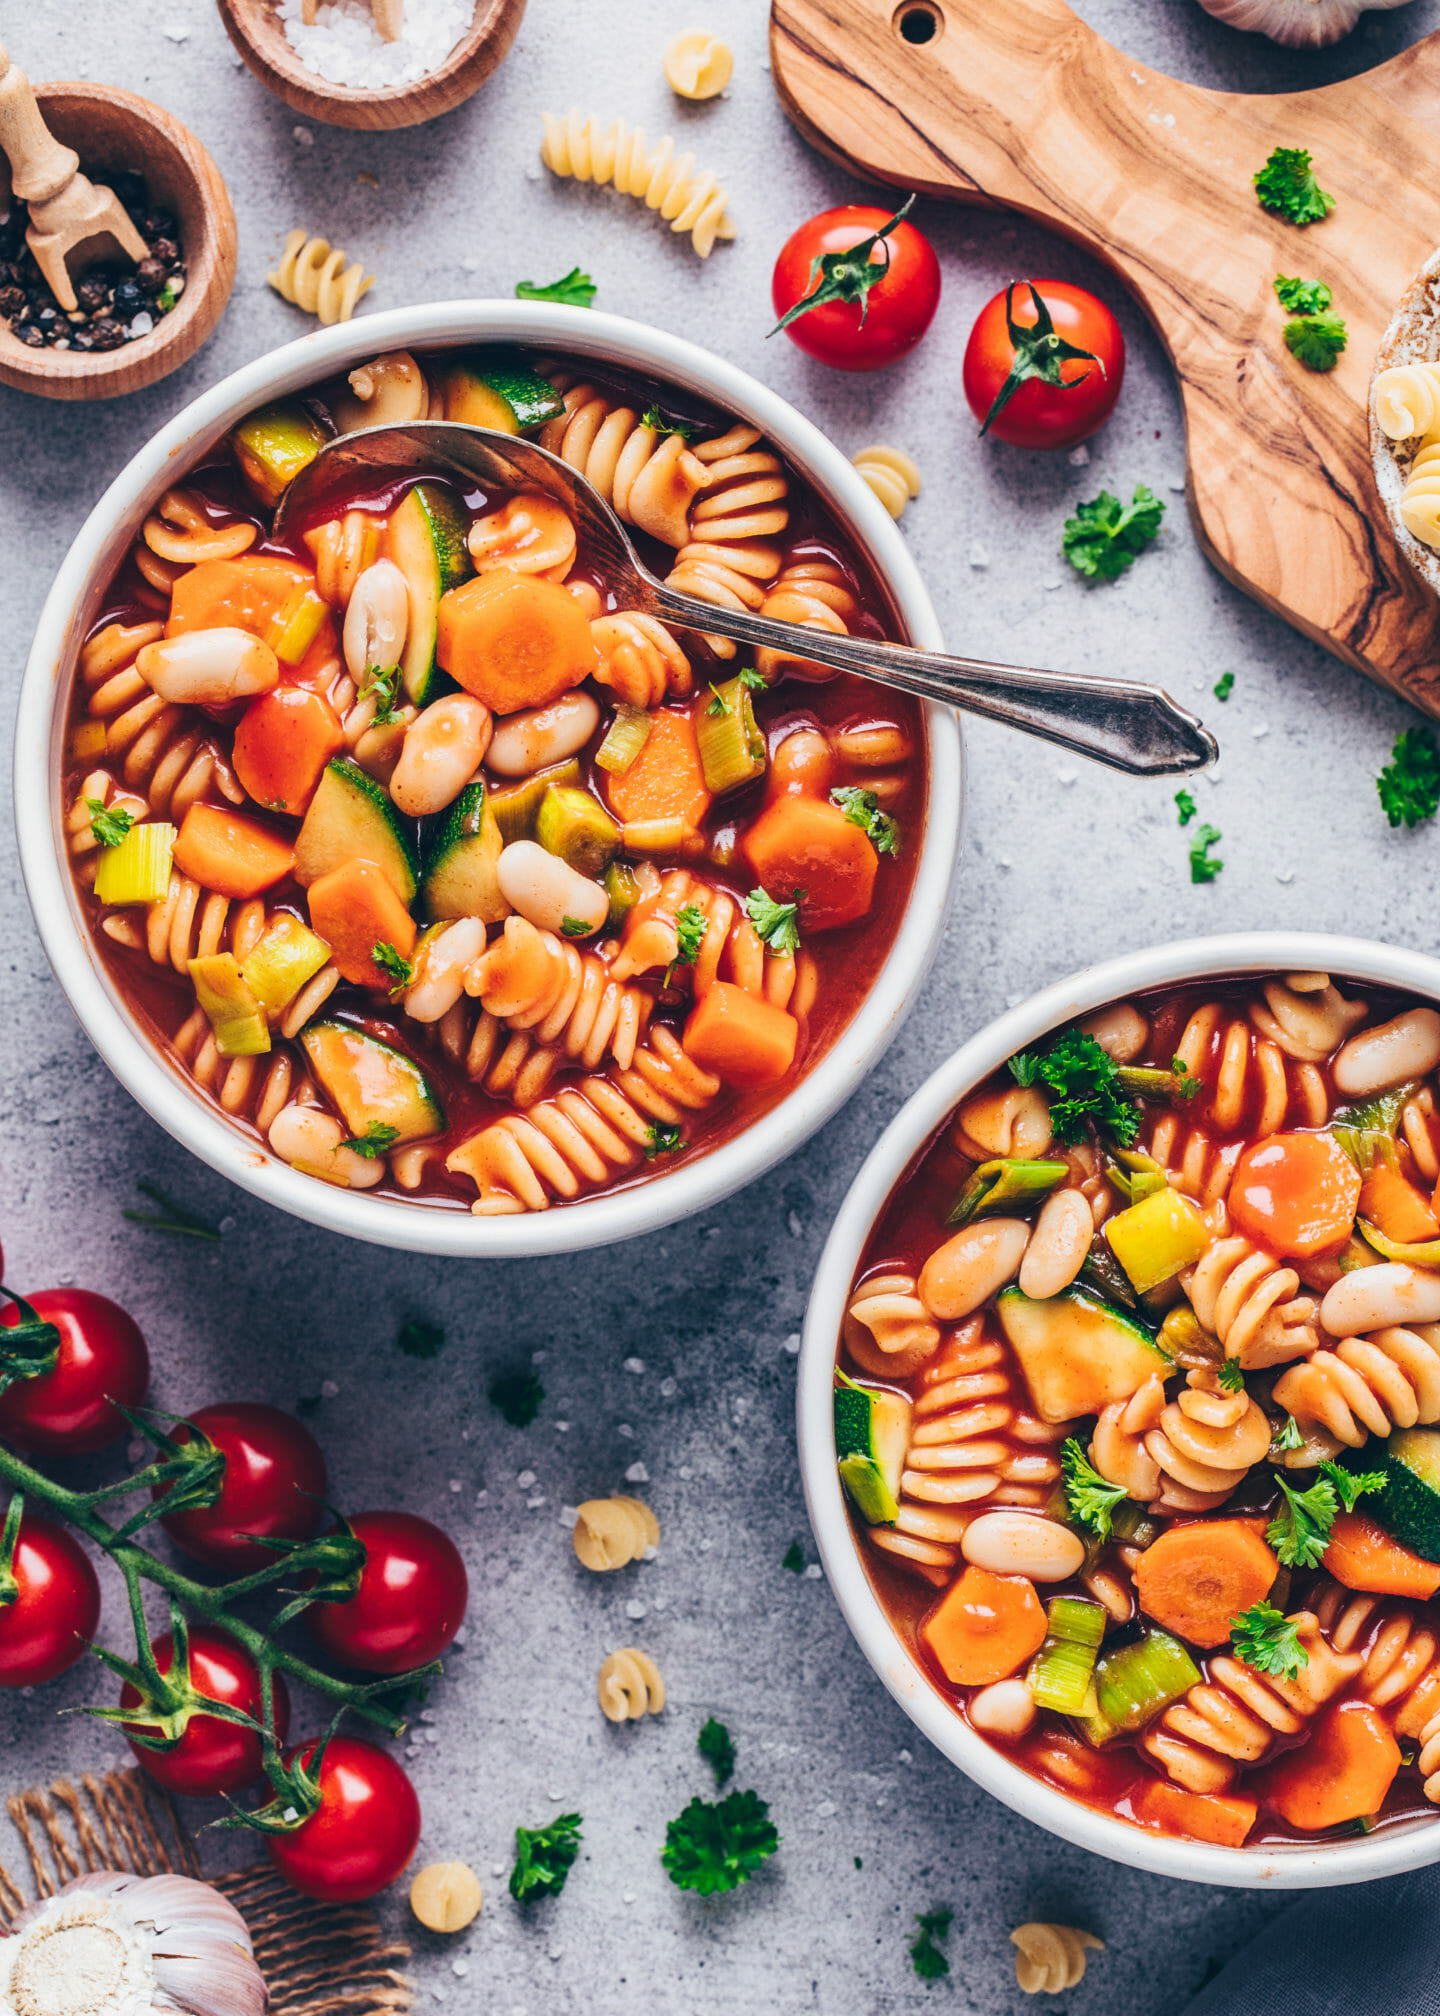 Vegan minestrone soup with vegetables and pasta